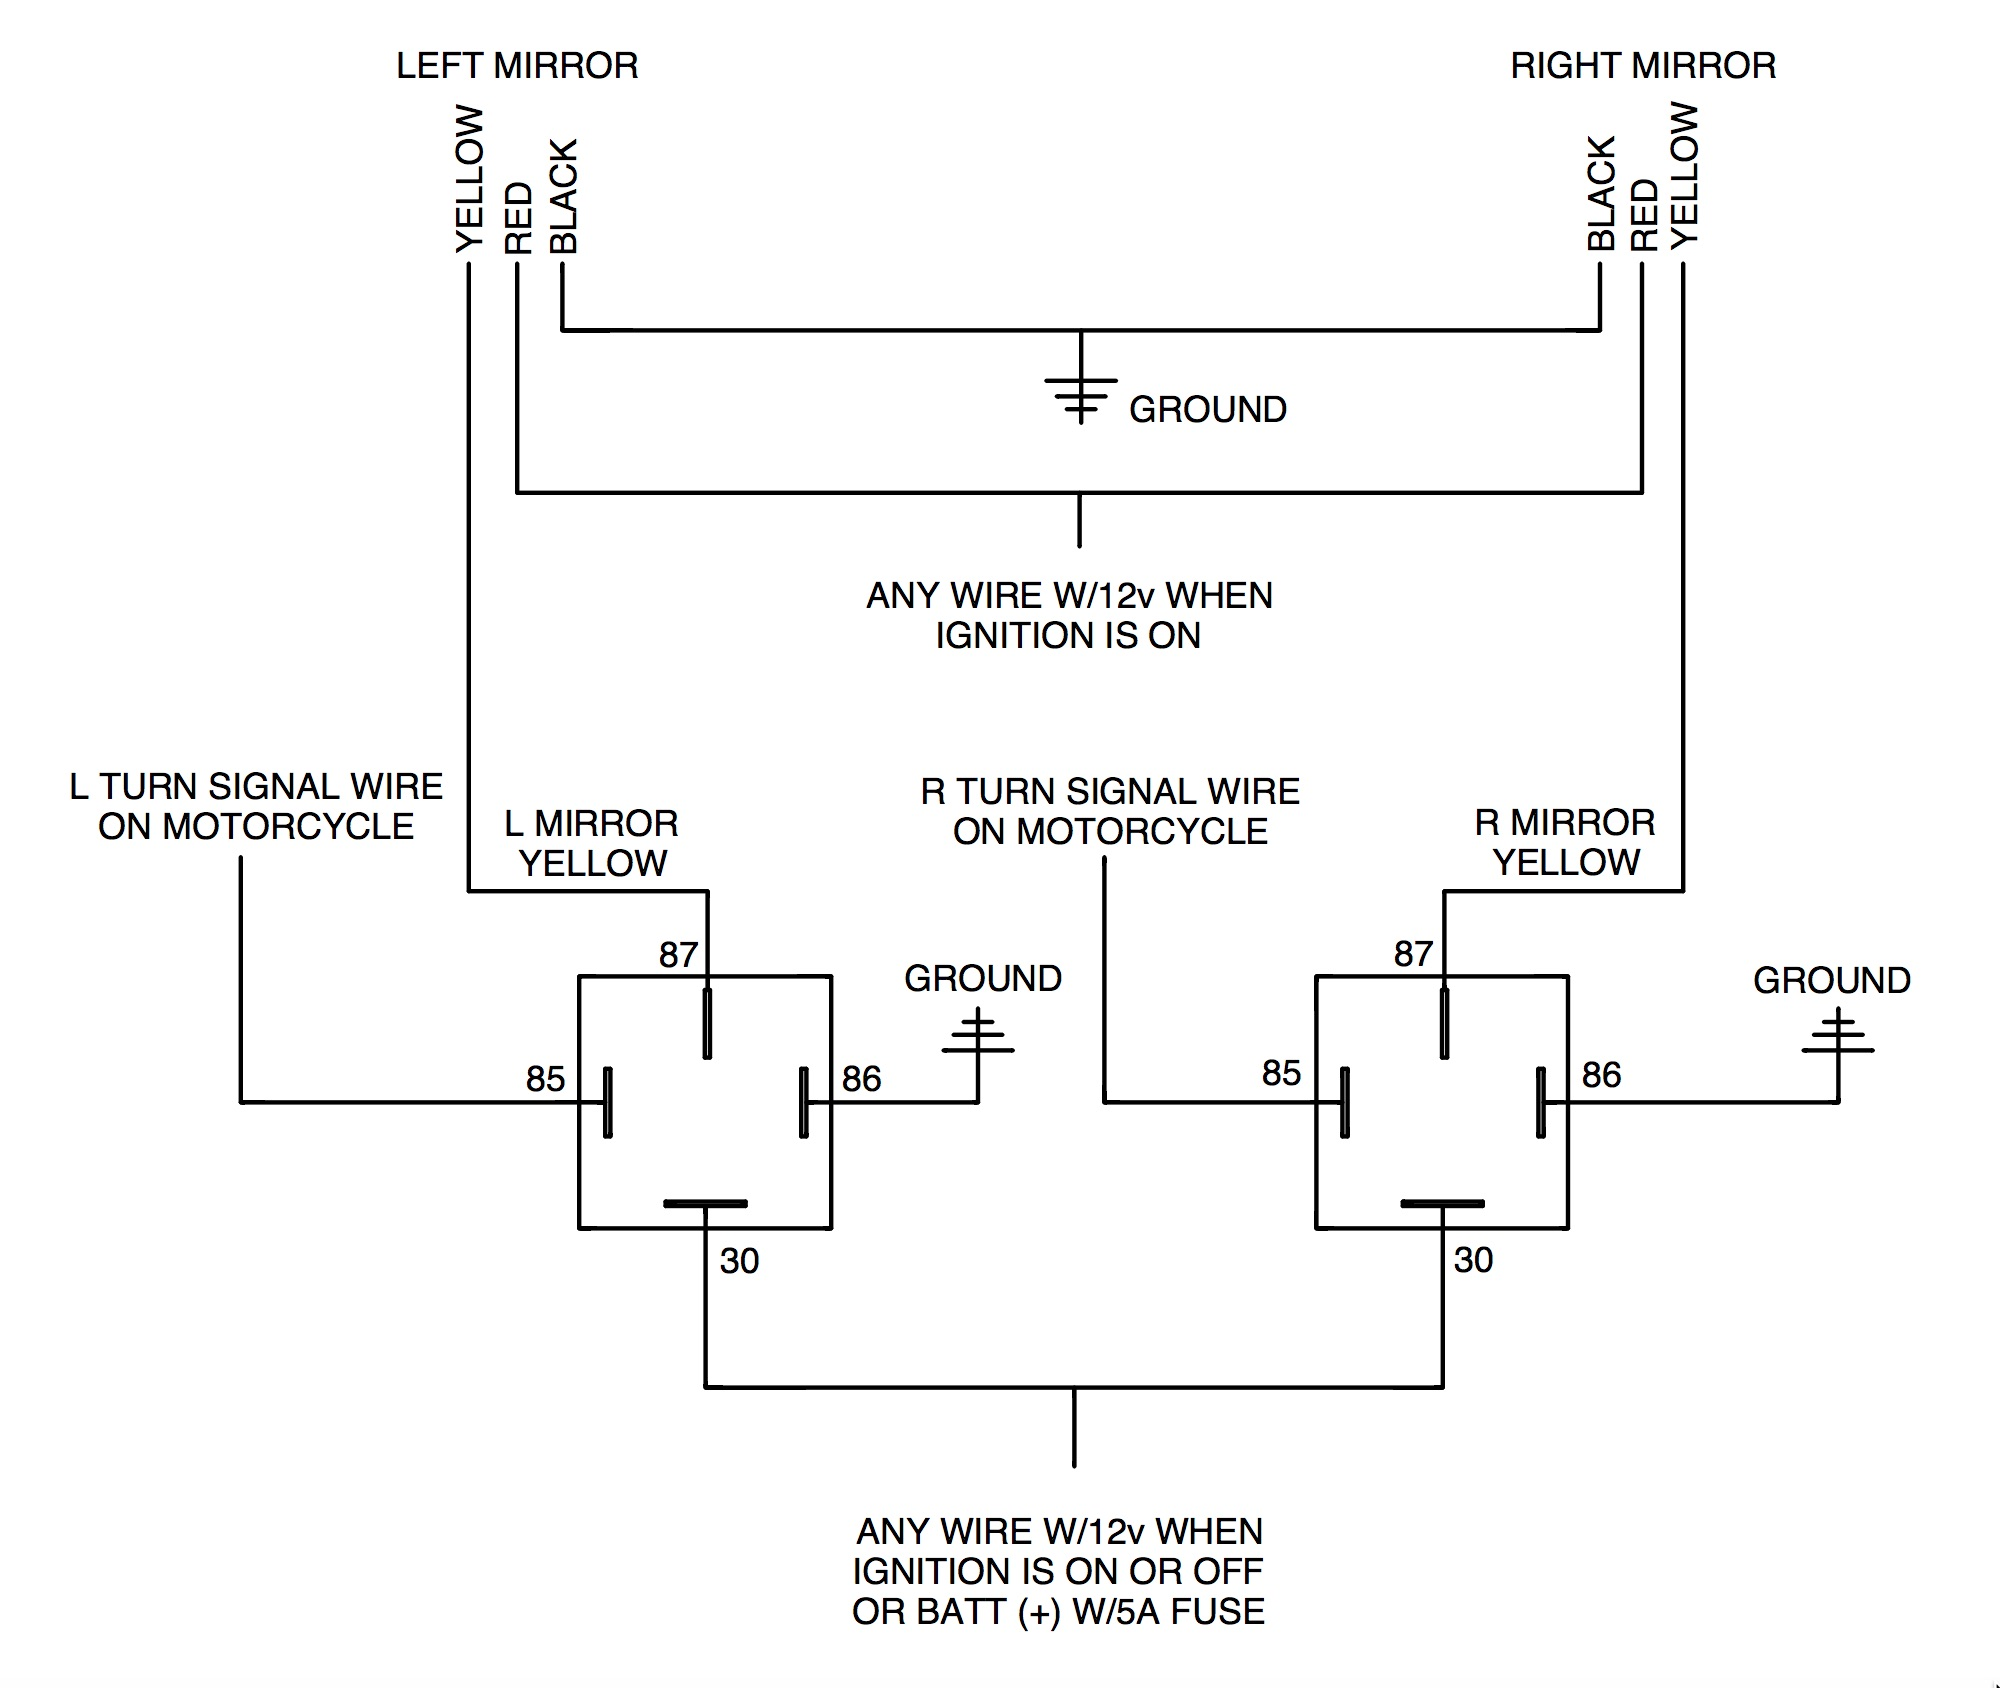 Rivco dual relay diagram adding rivco led mirrors to a victory cross country motorcycle Basic Turn Signal Wiring Diagram at pacquiaovsvargaslive.co